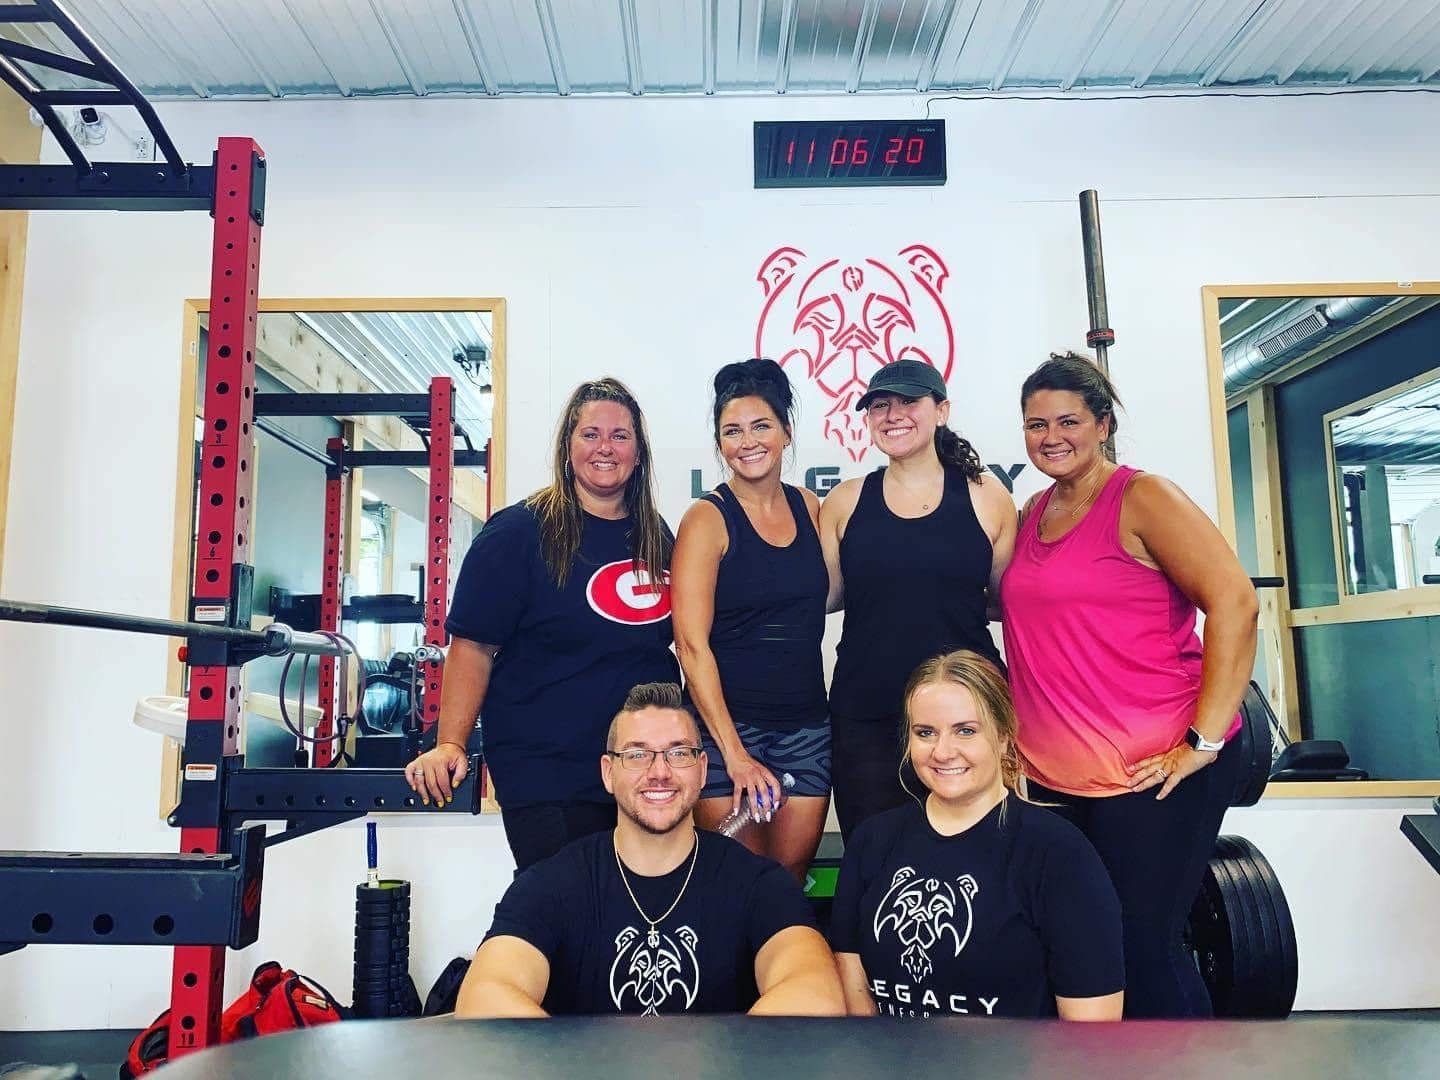 Upstate New York Summer Trip, stilettos and diapers, Legacy fitness guilderland, NY